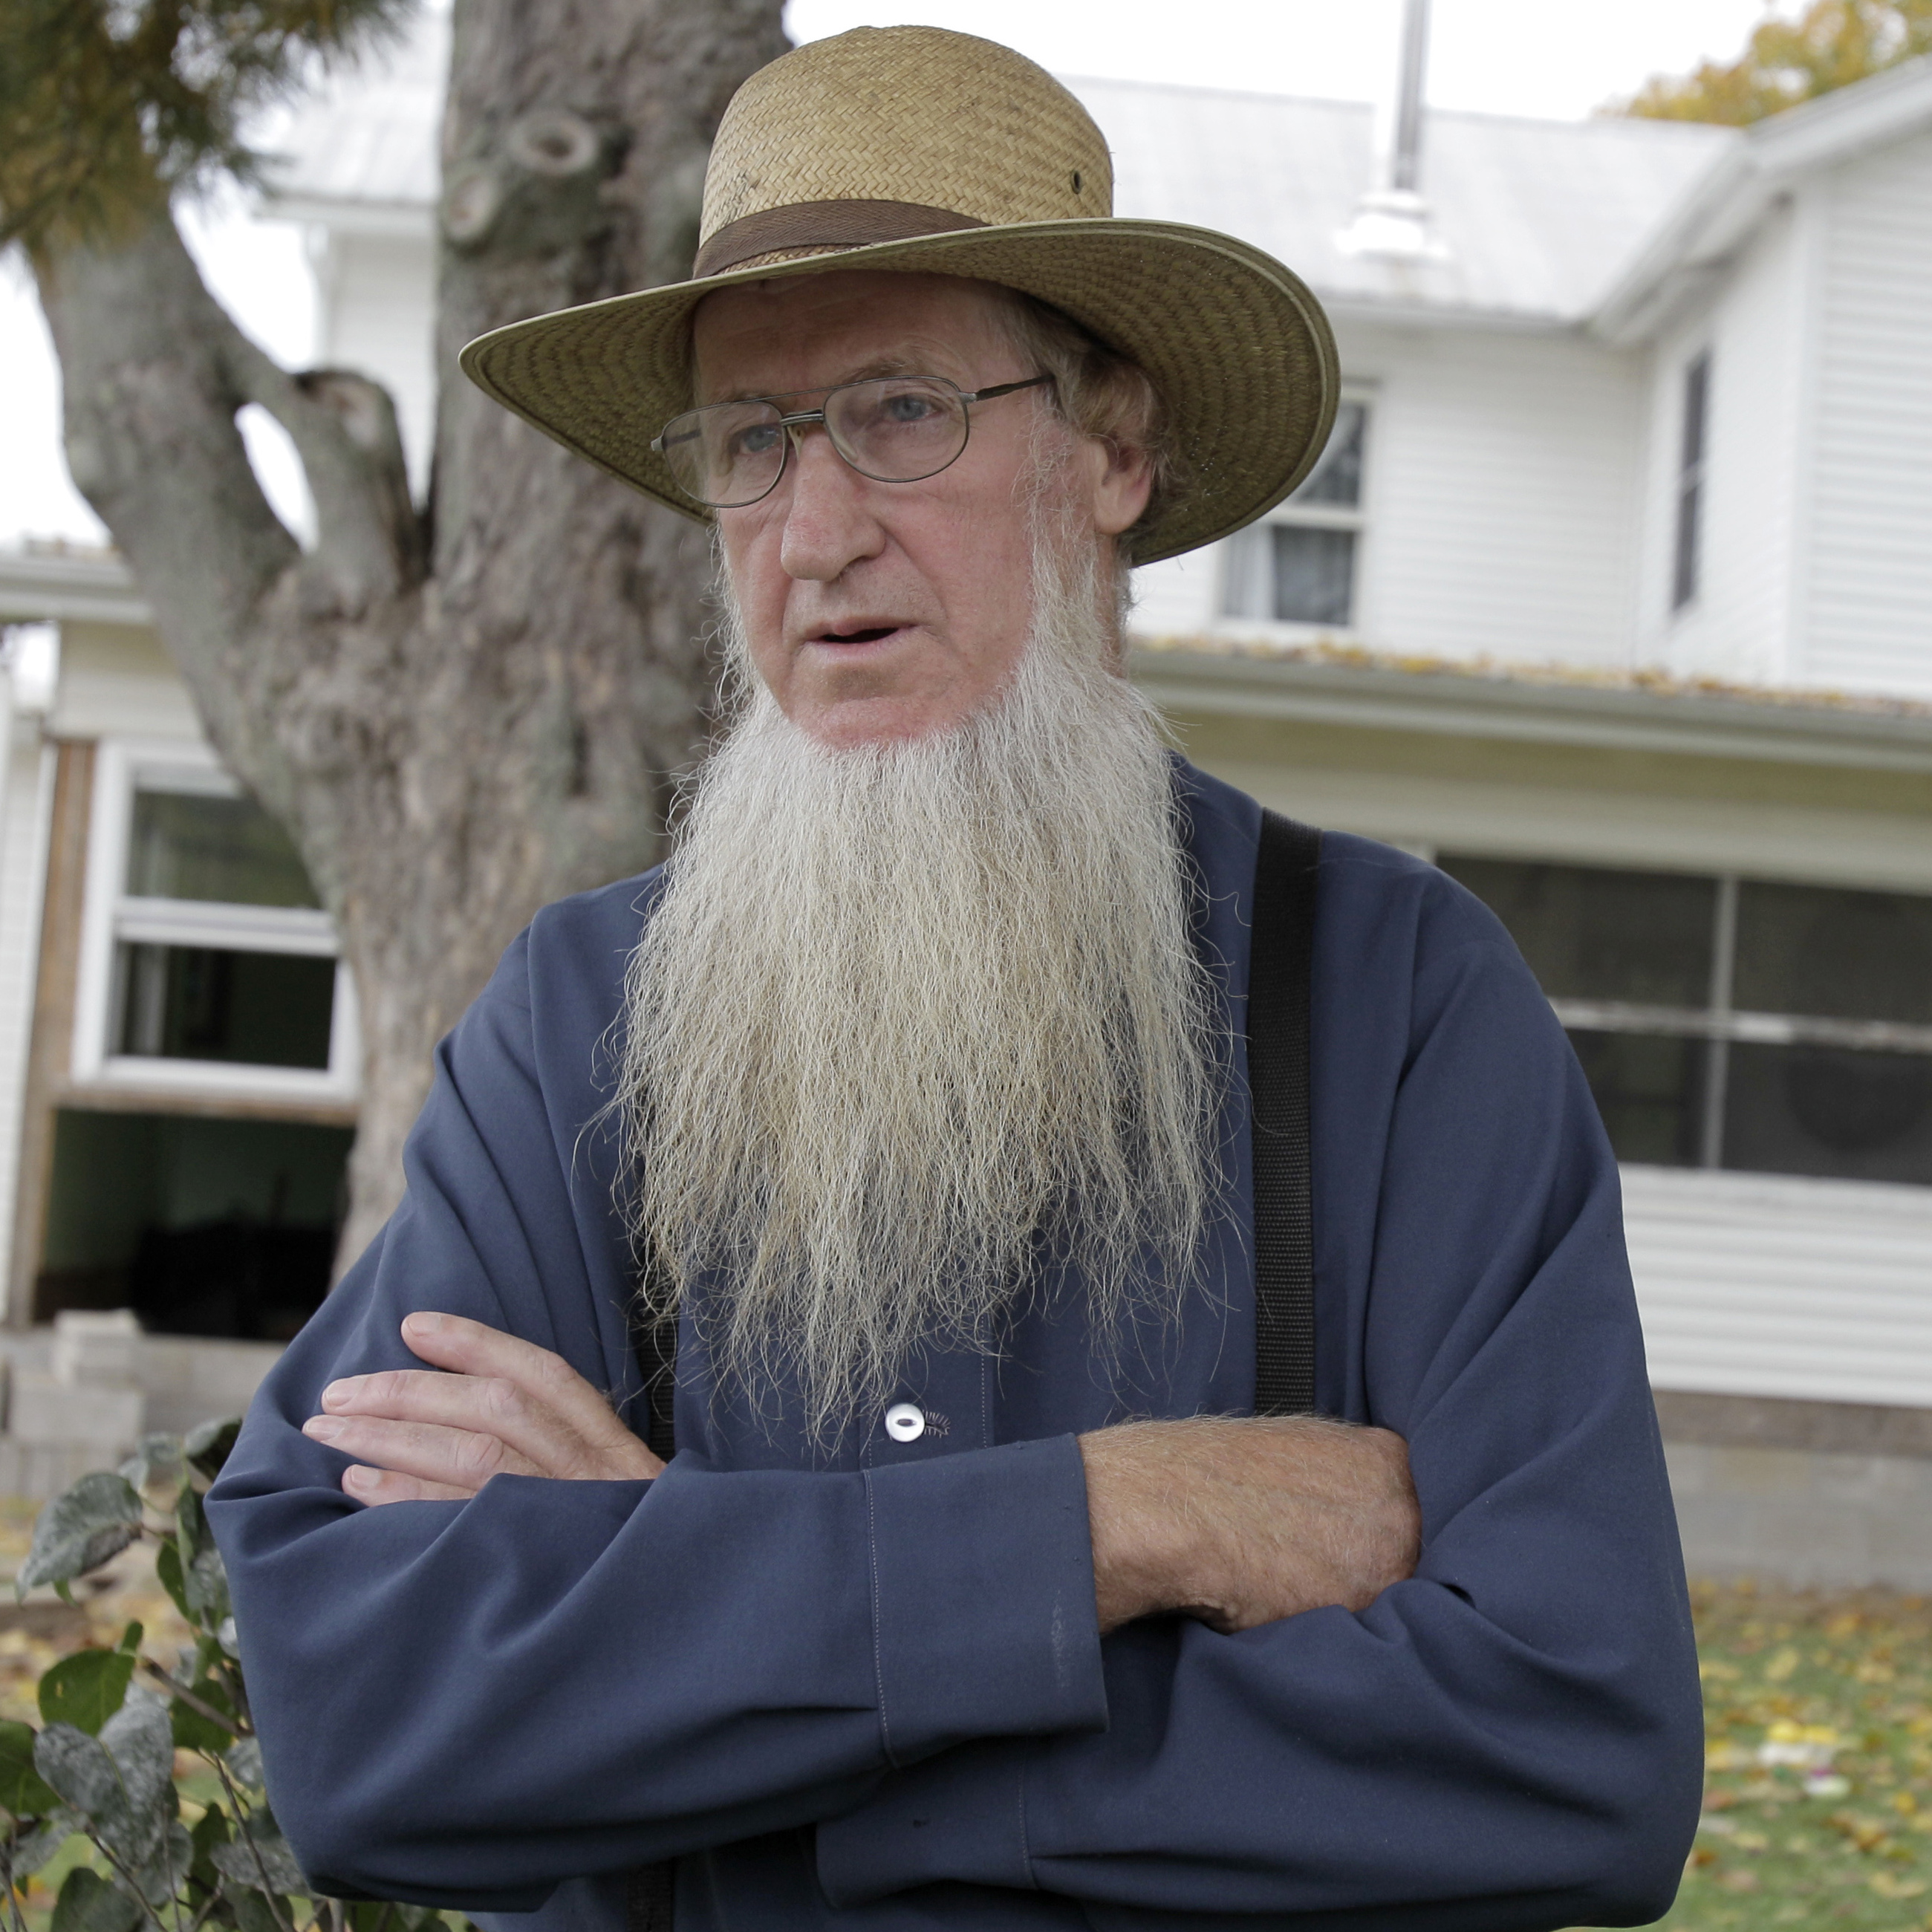 Amish bishop Samuel Mullet stands in front of his home in Bergholz, Ohio. He was found guilty of masterminding a plan to cut off beards and hair of other Amish.